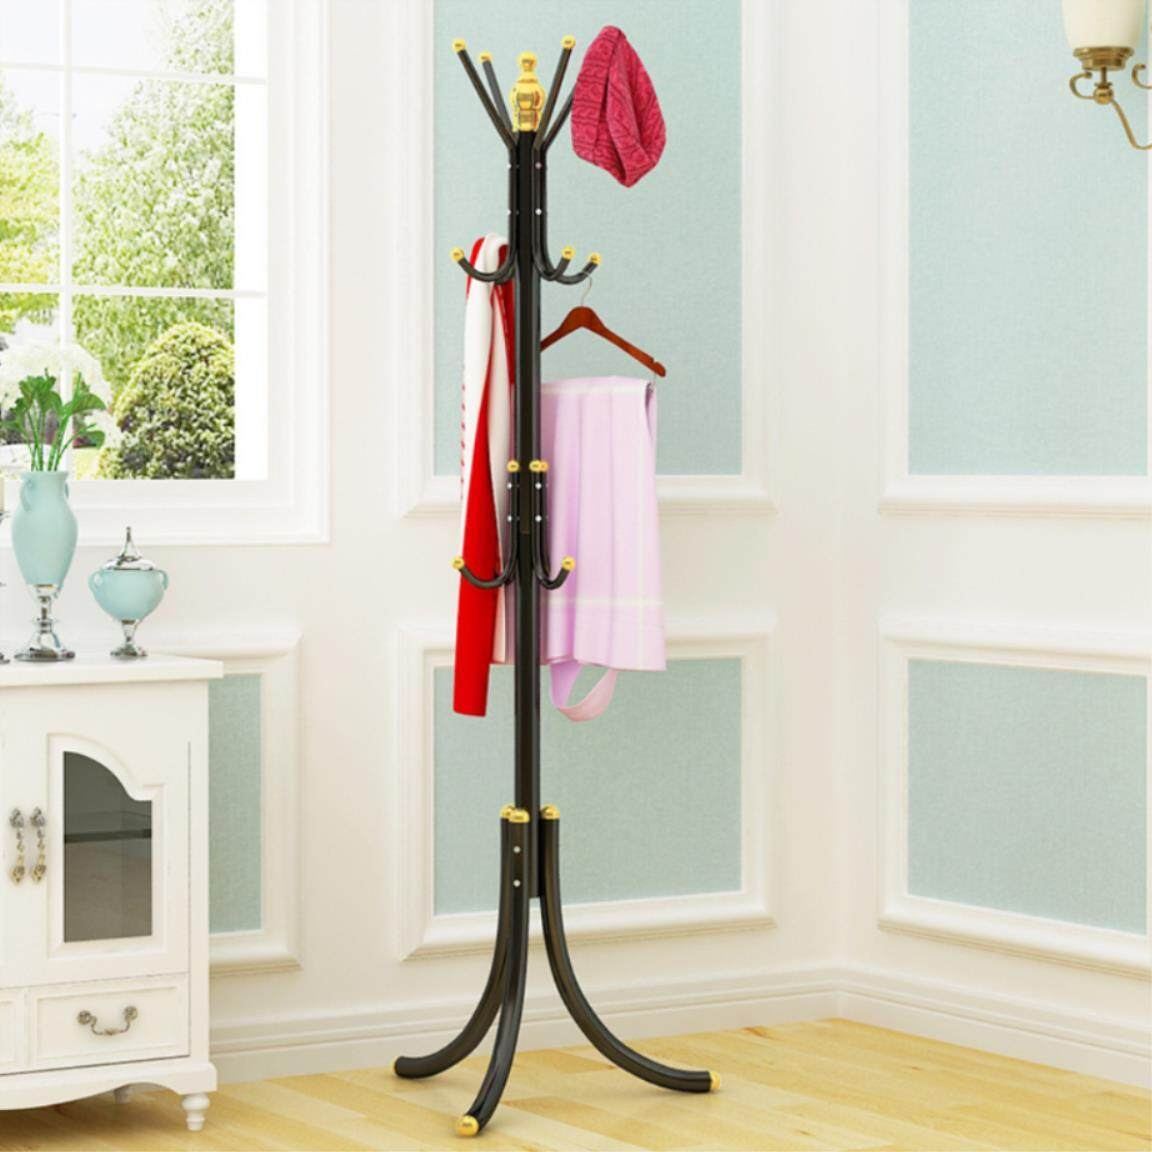 European Luxury Multifunction Coat Hat Metal Rack Organizer Hanger Hook Stand For Purse Handbag Clothes Scarf